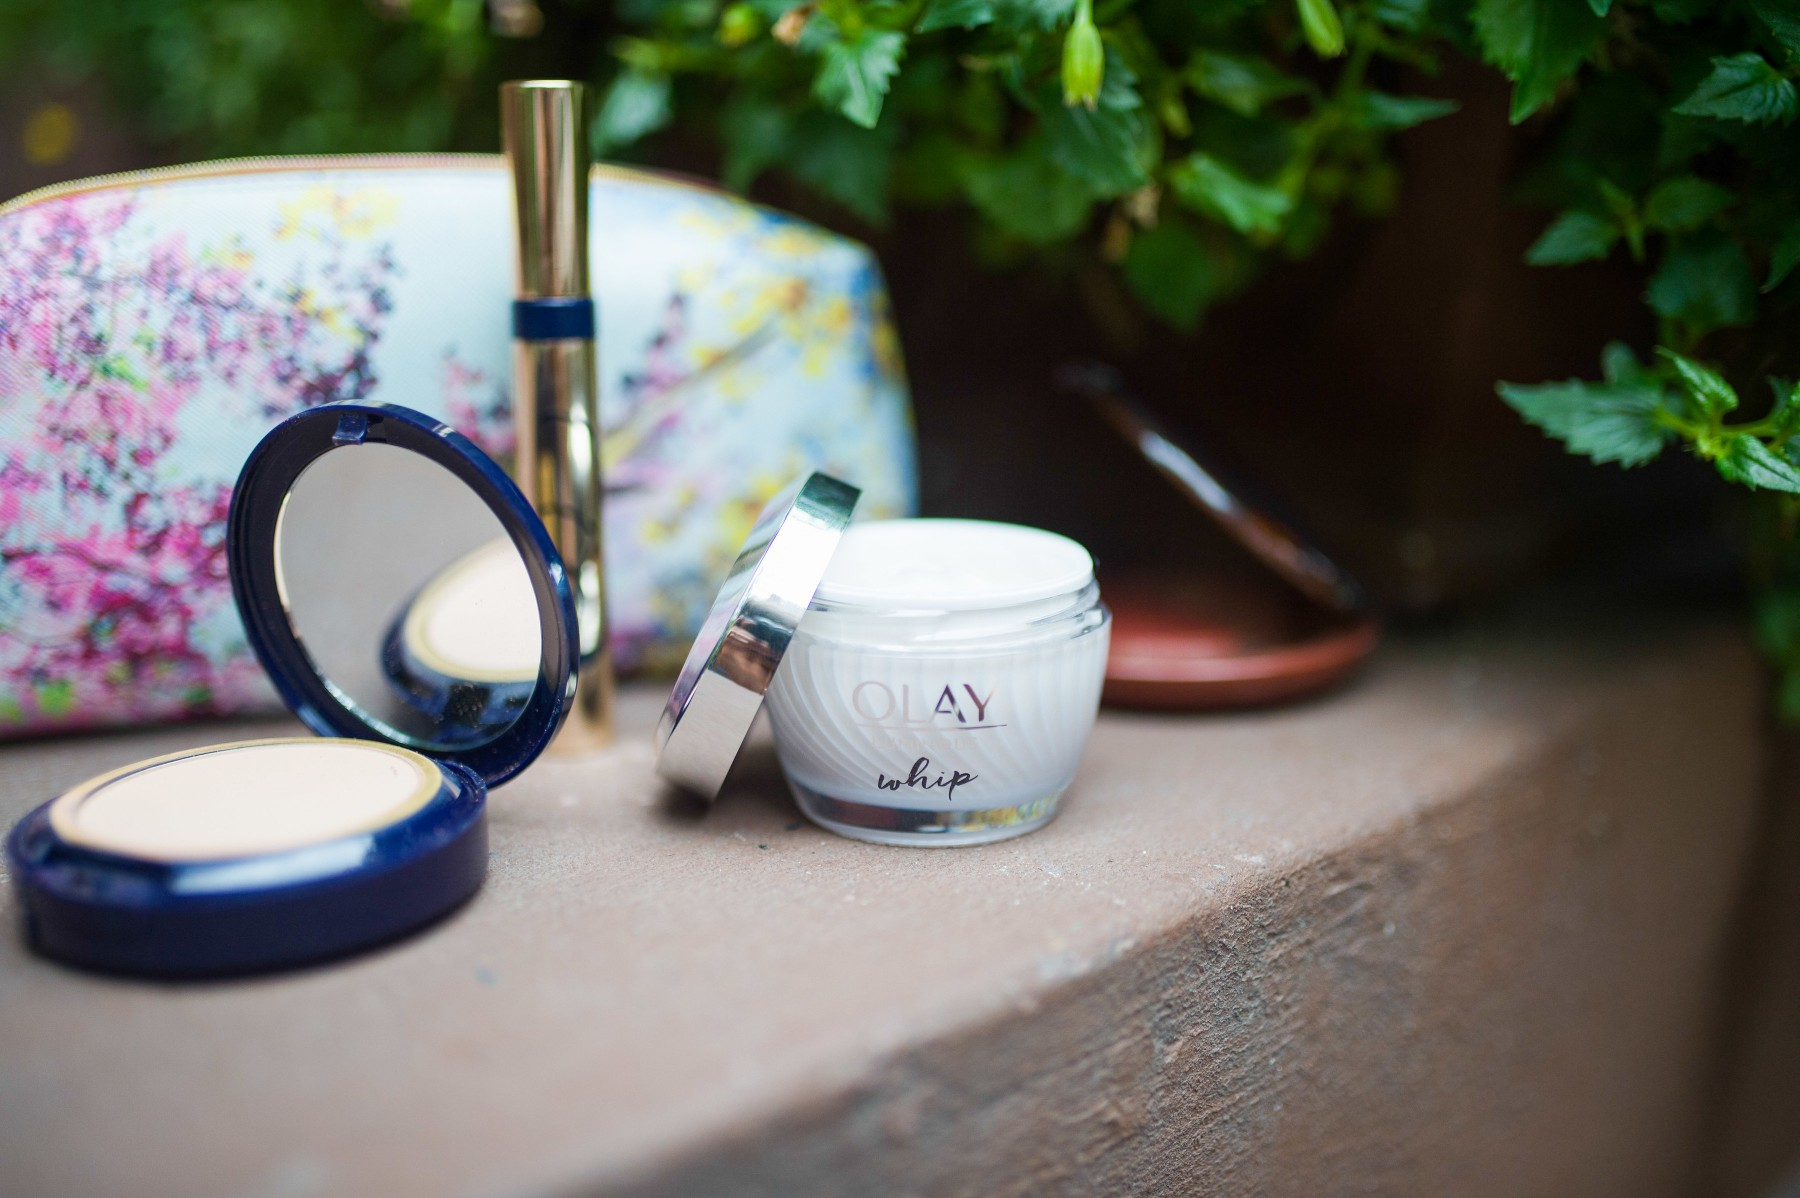 Olay luminous whips review beauty blogger style elixir 5